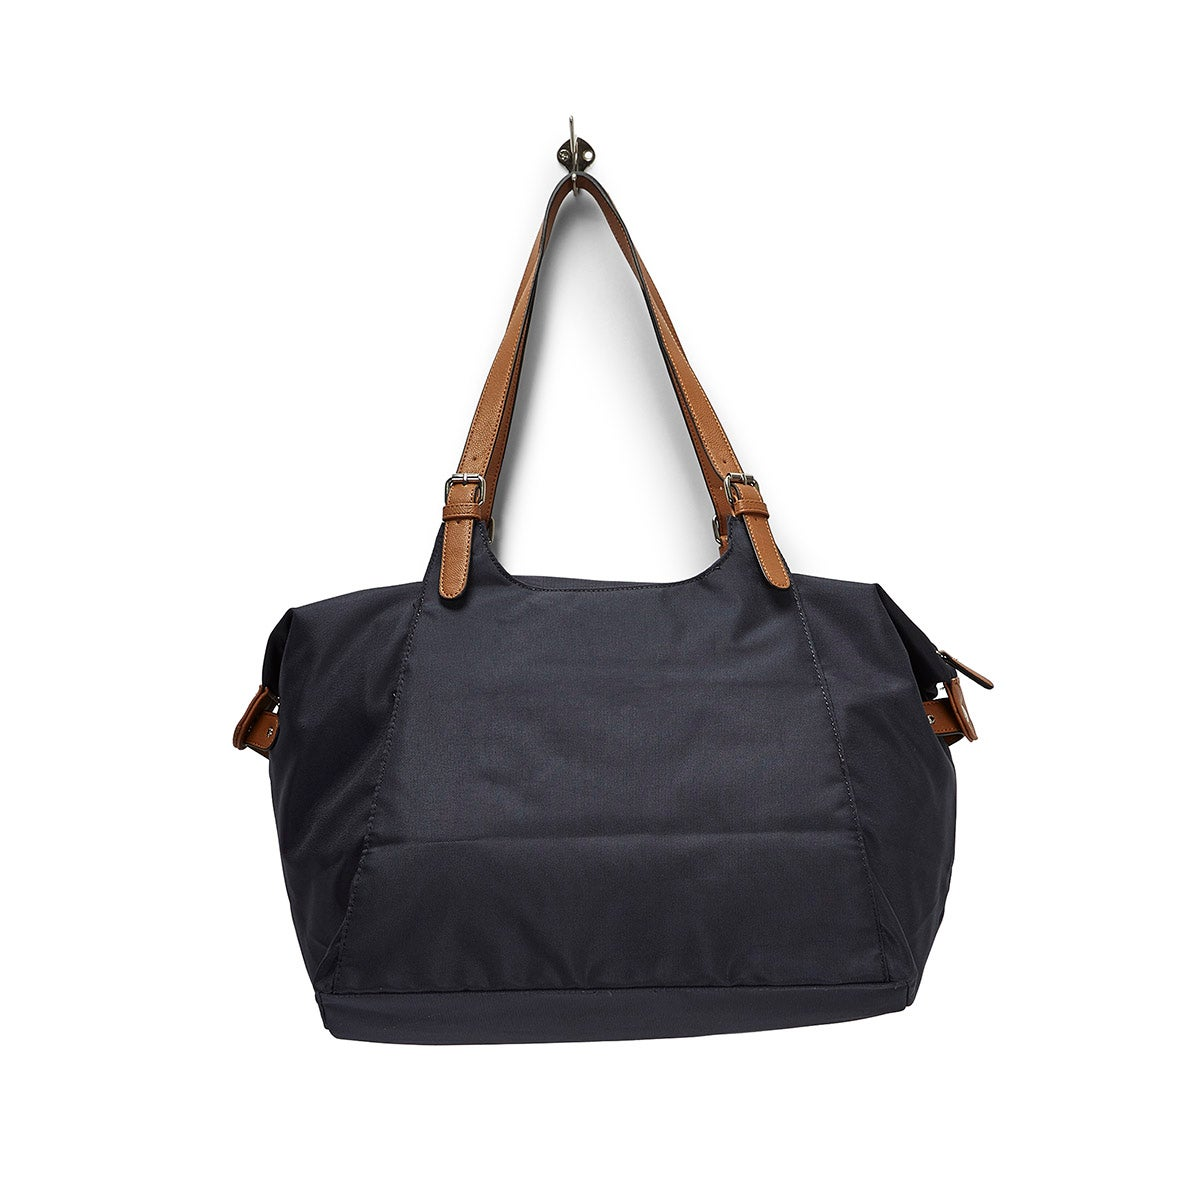 Lds Roots73 navy nylon large tote bag